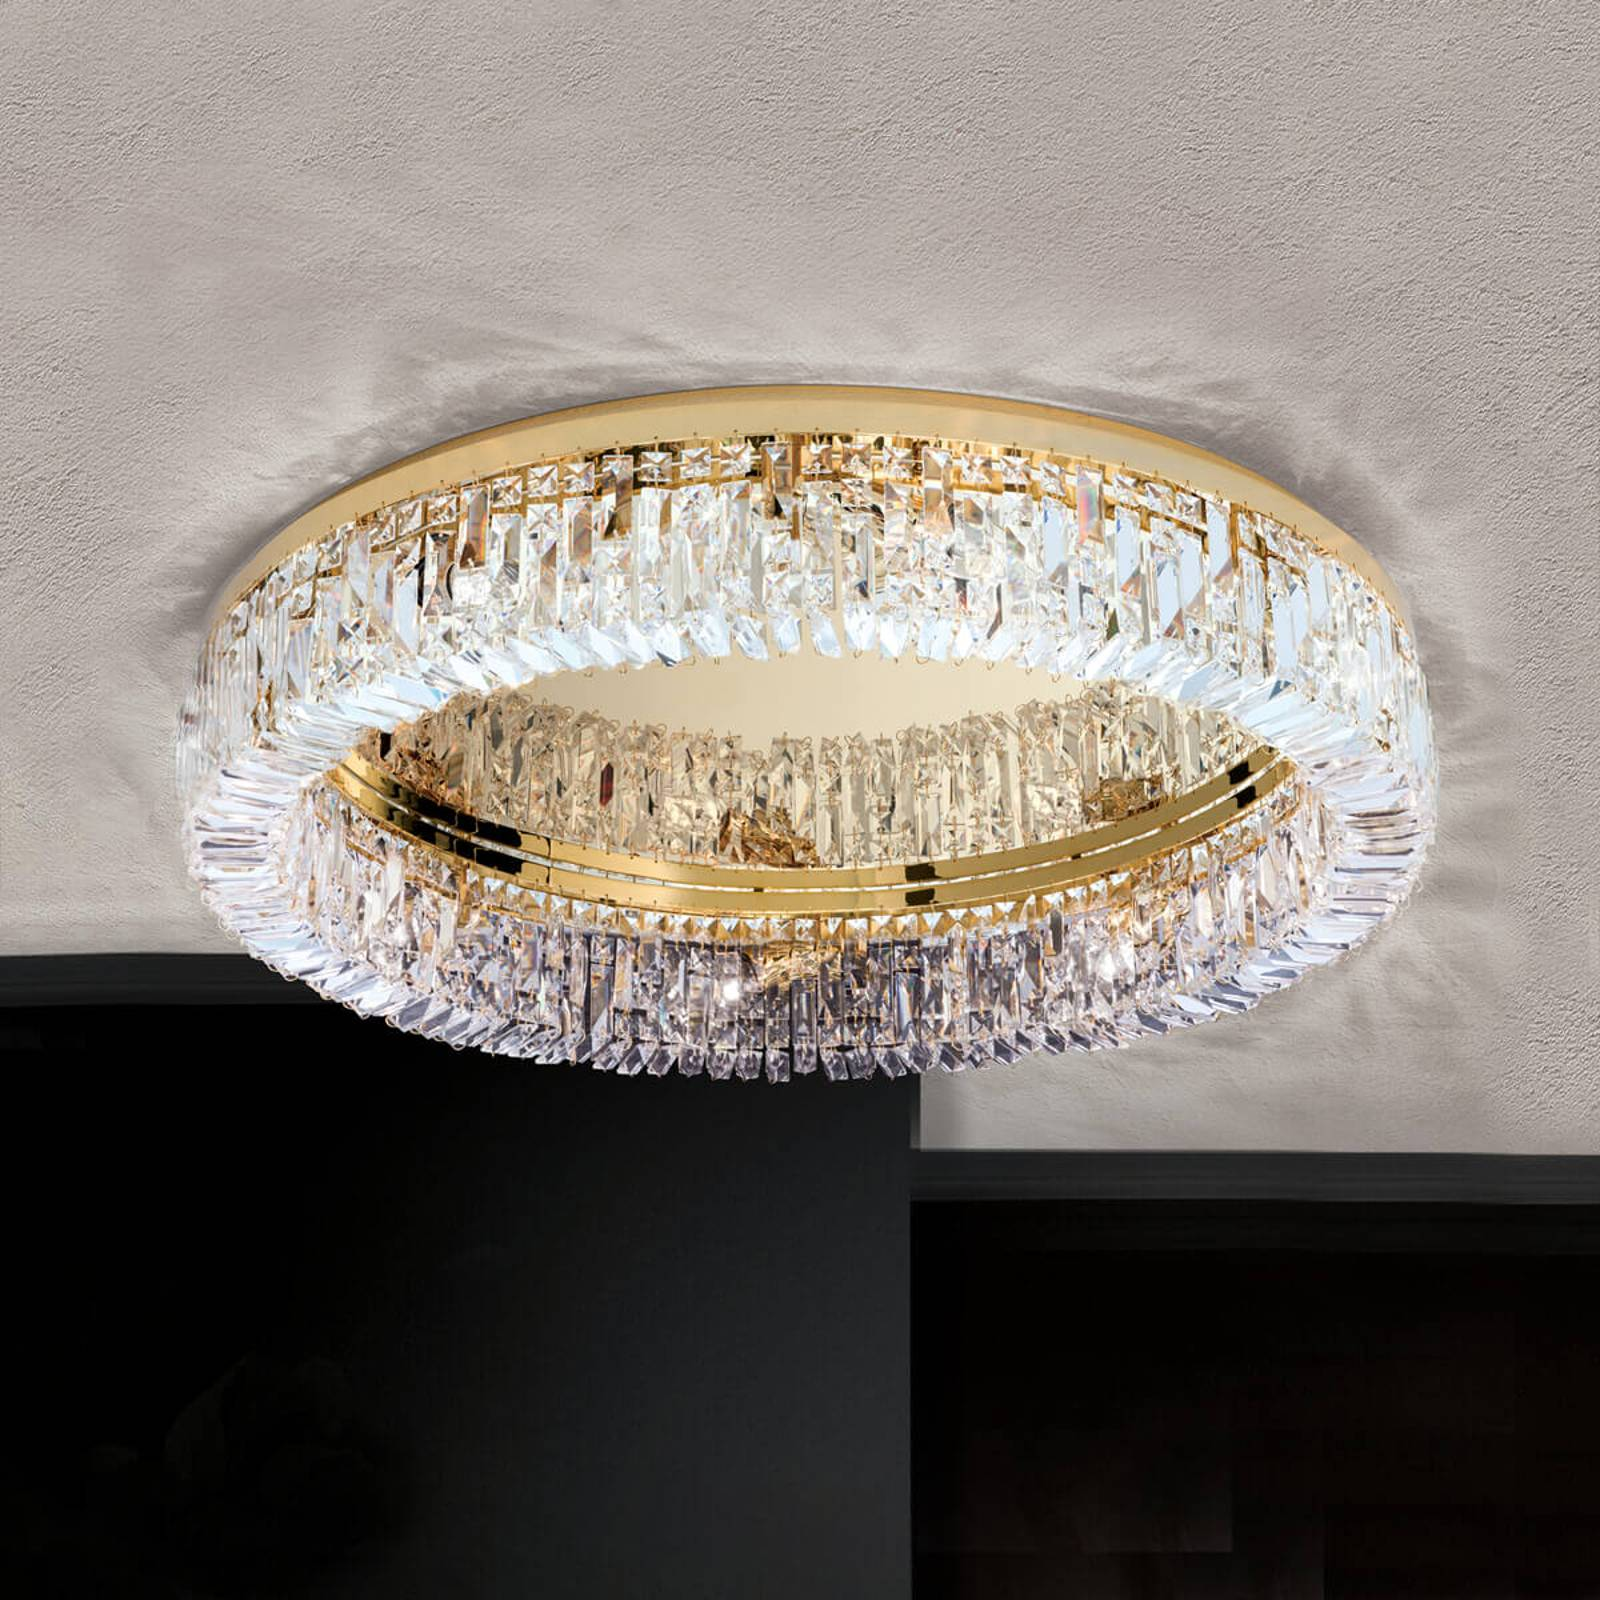 Crystal ceiling lamp Ring - 75 cm from Orion